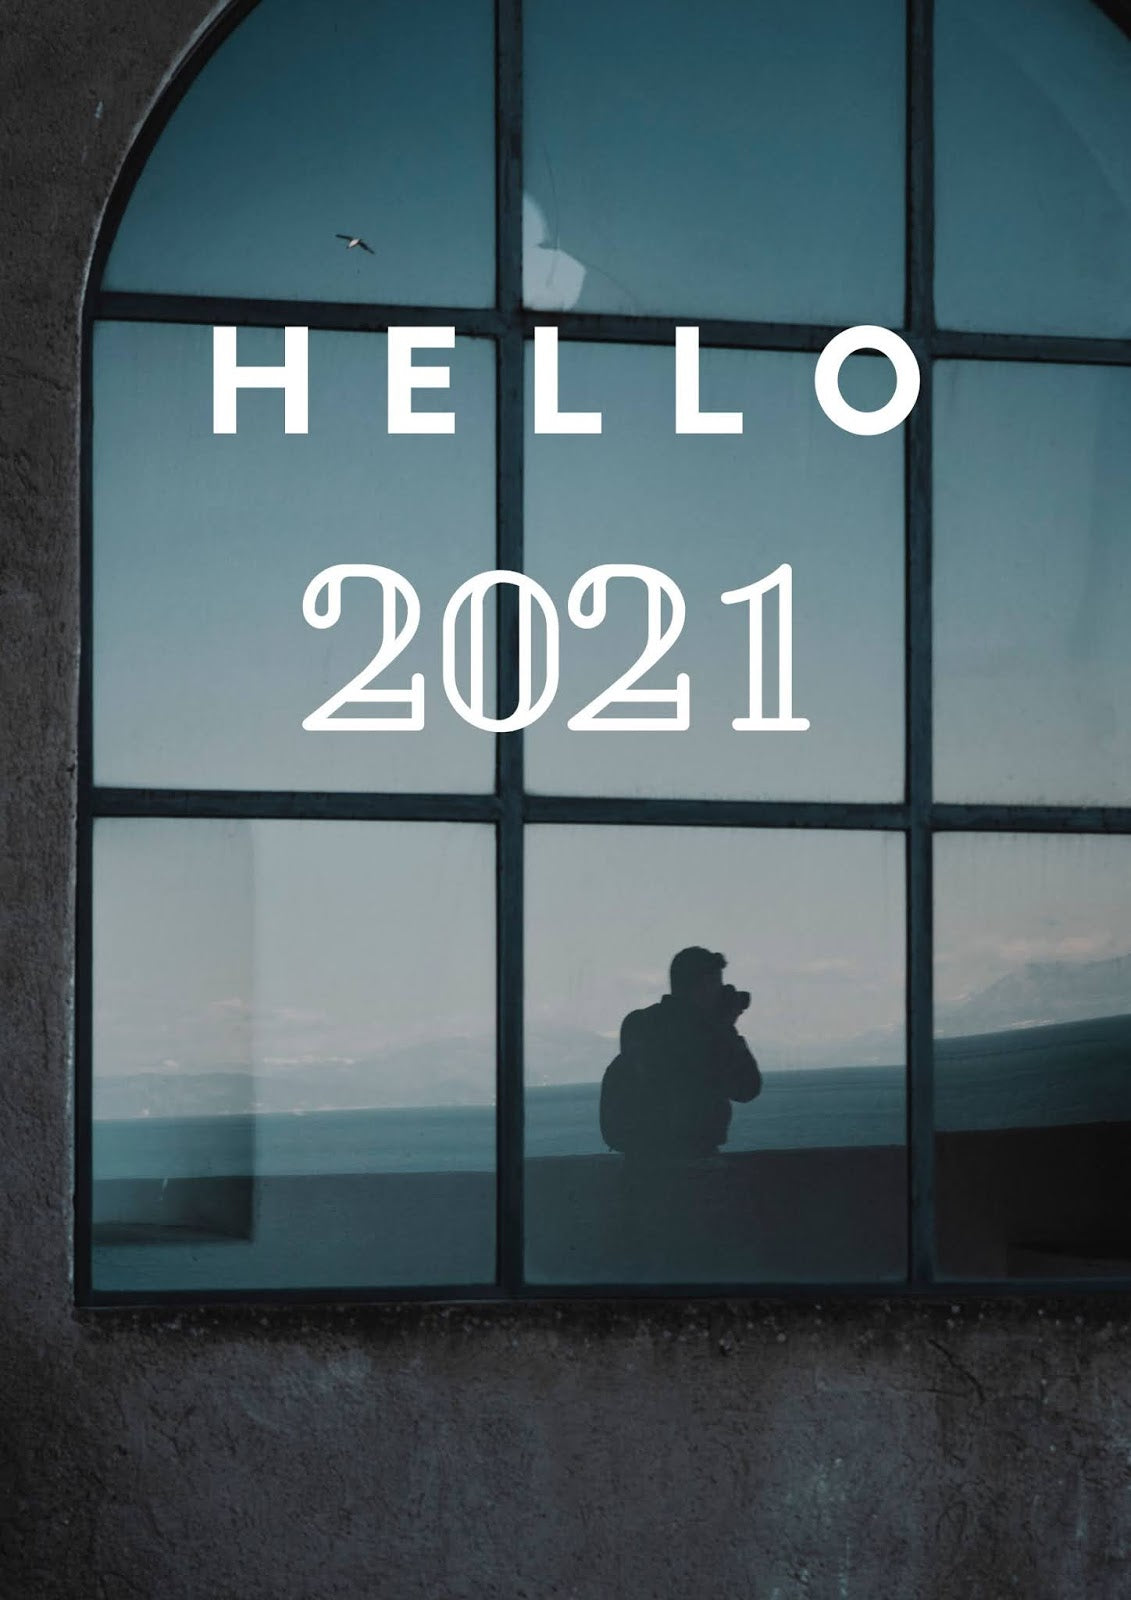 Happy 2021 and Here's to New Beginning